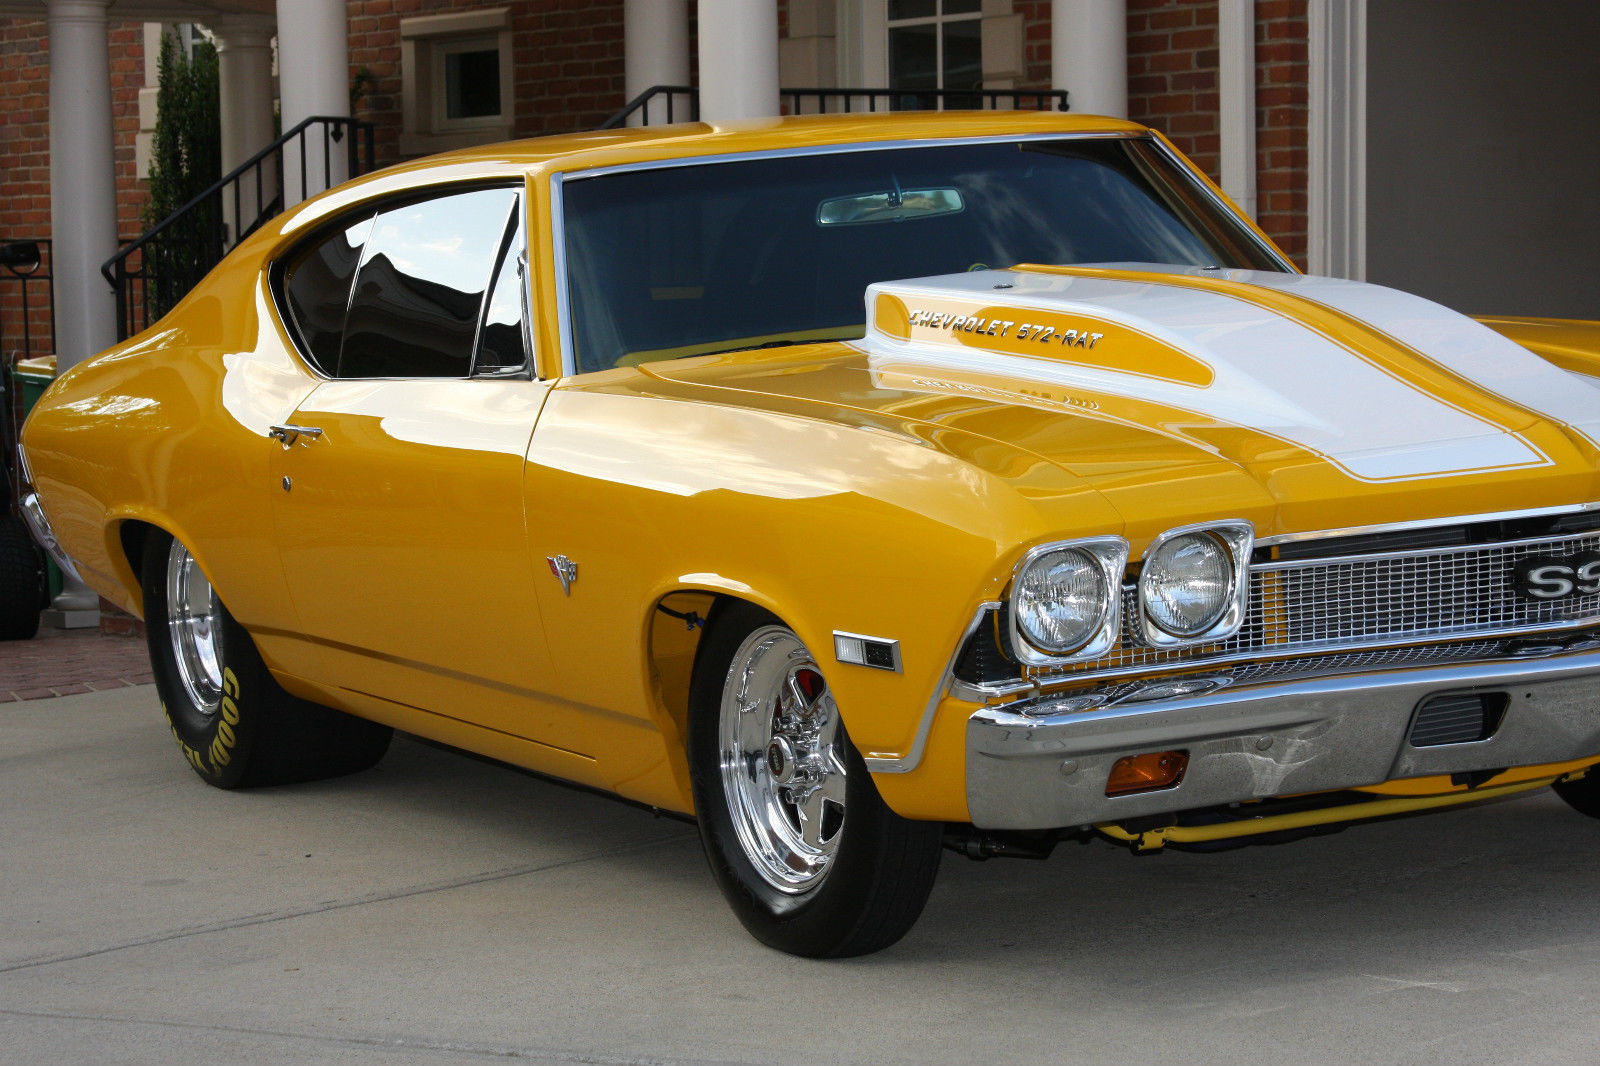 1968 Chevrolet Chevelle Twin Supercharged 582 Bbc Frame